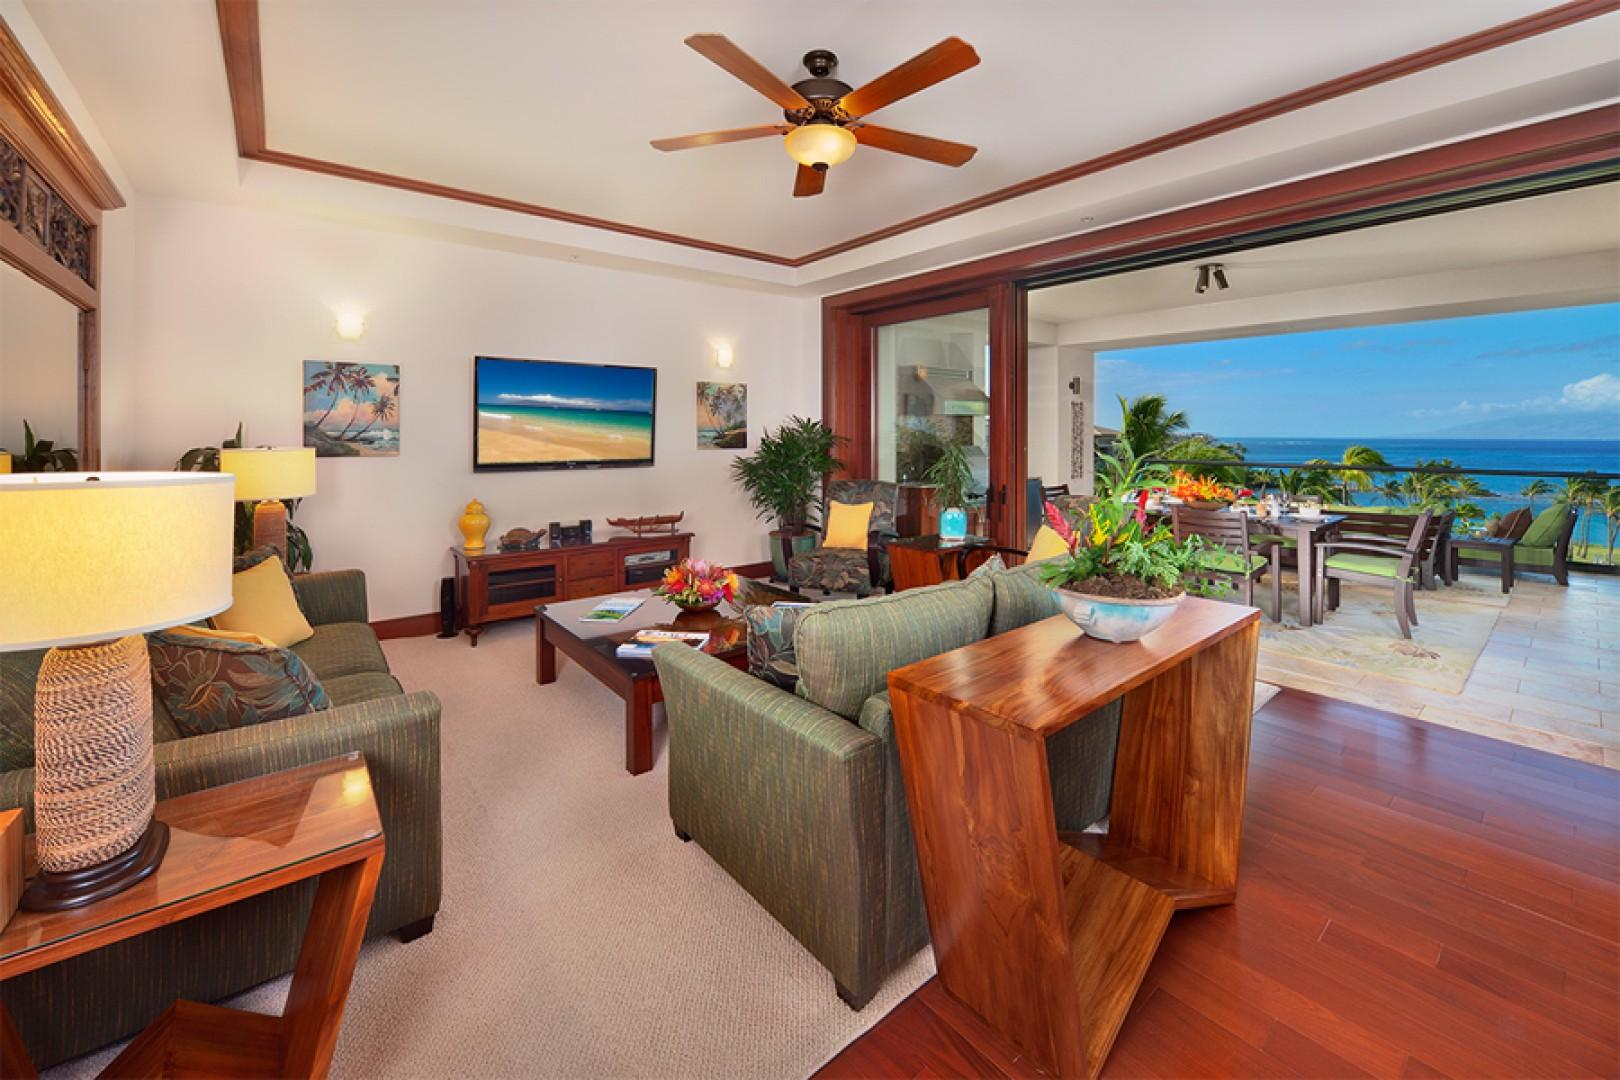 Sea Mist Villa 2403 - Luxury Furnishings and Large Flat Panel HD Television in the Great Room